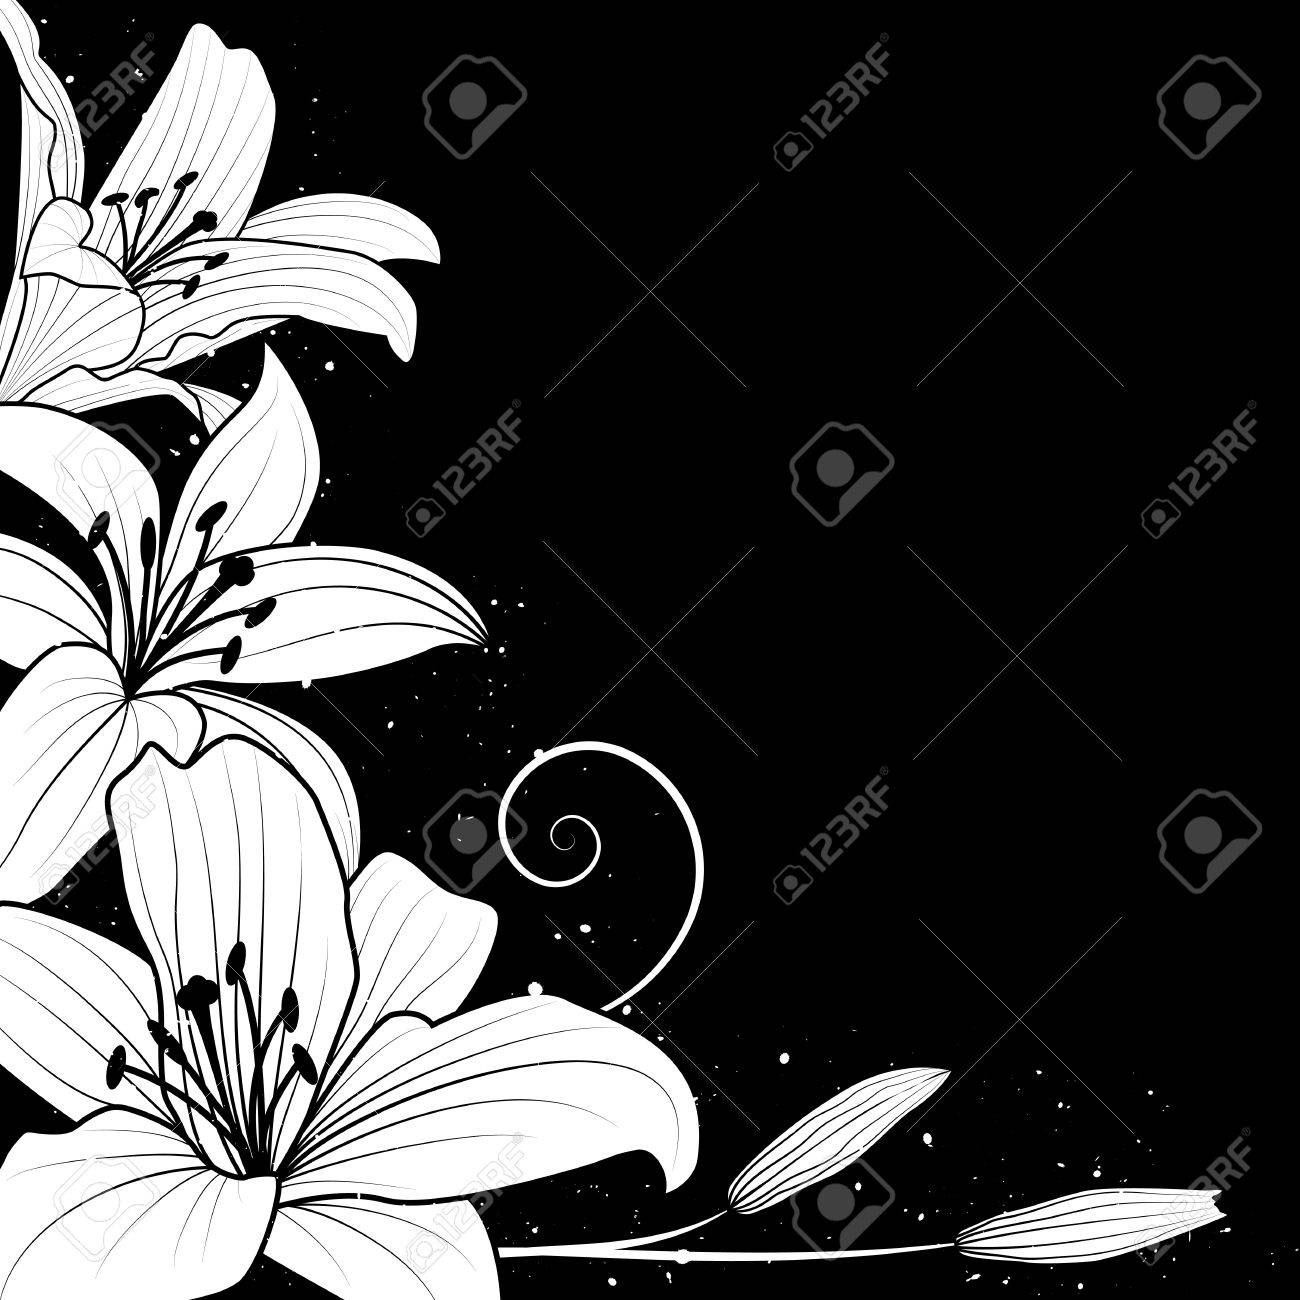 illustration with flowers of lily in black and white colors Stock Vector - 14477448